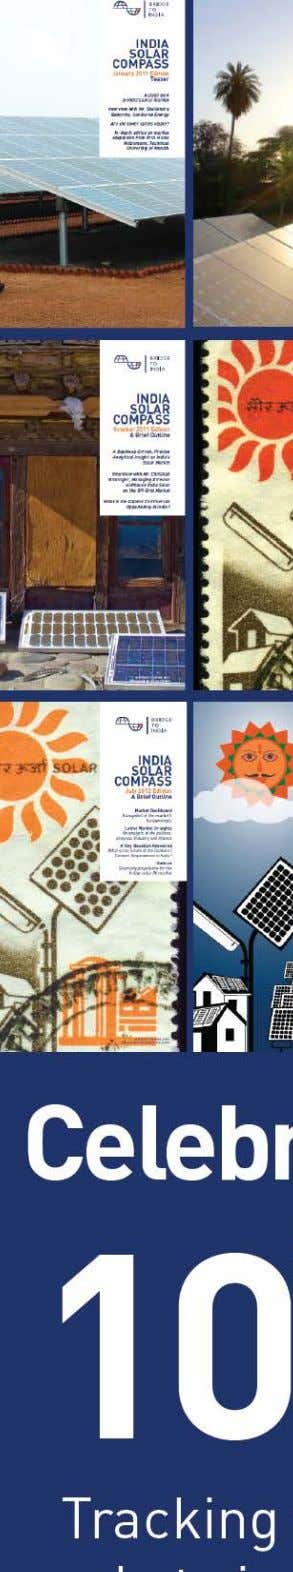 INDIA SOLAR COMPASS April 2013 Edition Market Dashboard A snapshot of the market's fundamentals Latest